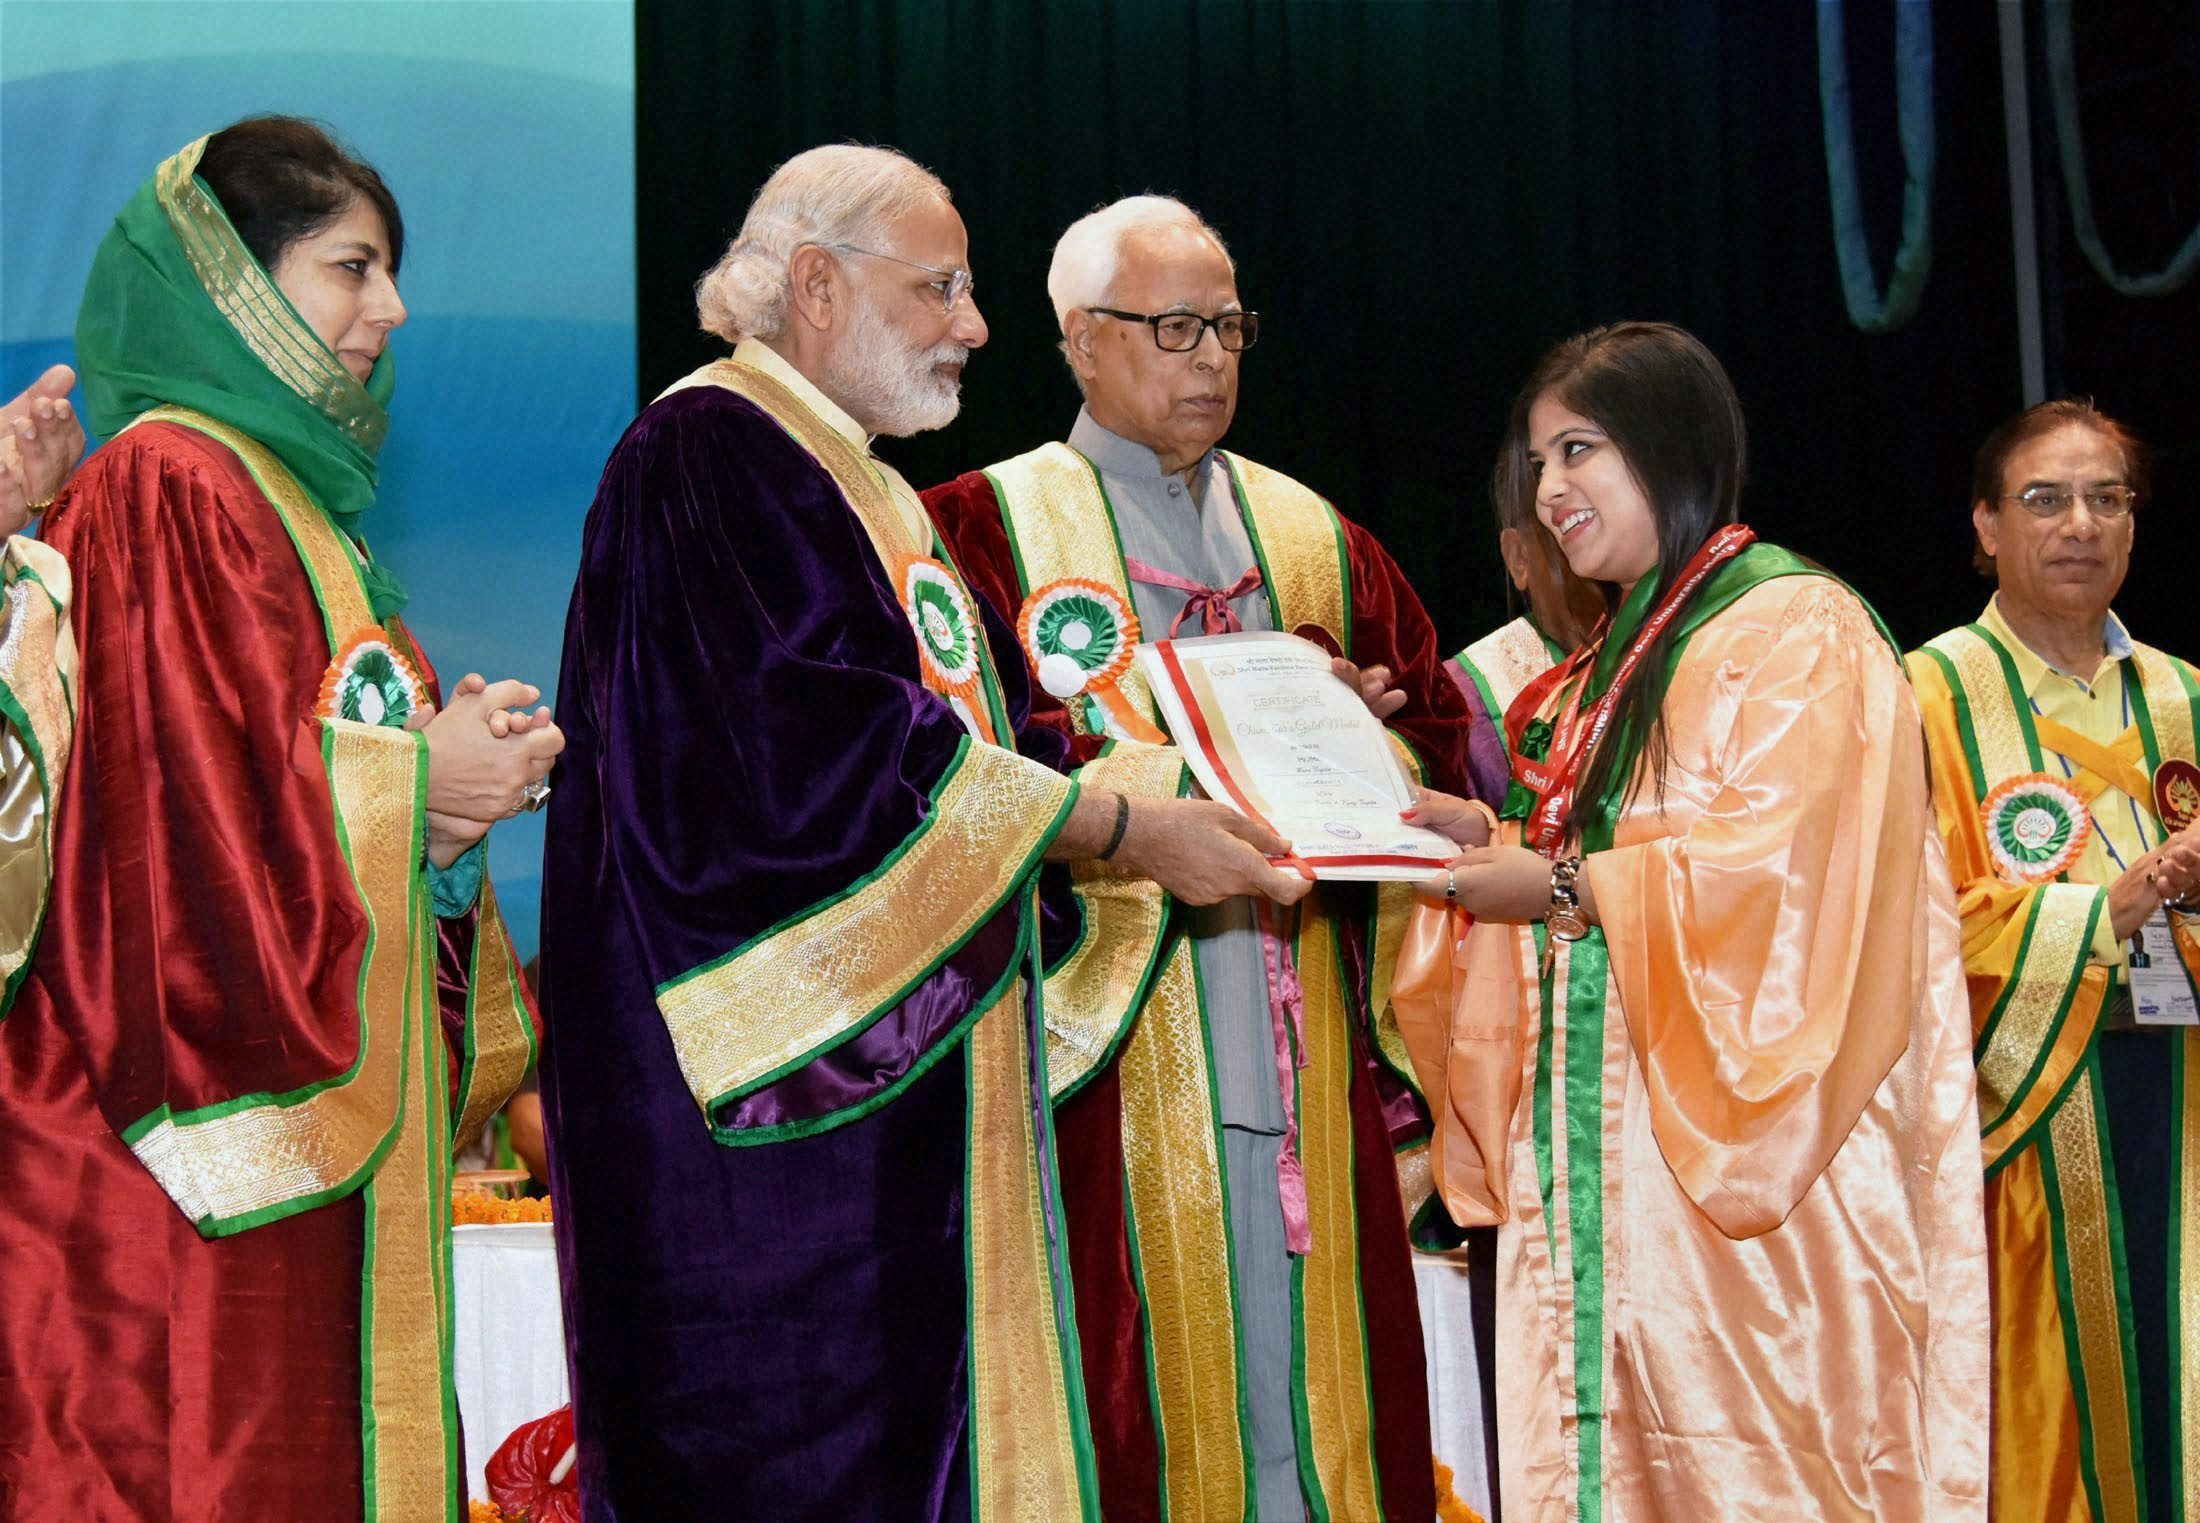 RPT:Jammu: Prime Minister Narendra Modi presents certificate to a student at the 5th Convocation of Shri Mata Vaishno Devi University at Katra in Jammu and Kashmir on Tuesday. Governor of Jammu and Kashmir, N N Vohra Jammu and Kashmir Chief Minister Mehbooba Mufti are also seen. PTI Photo (PTI4_19_2016_000028B)